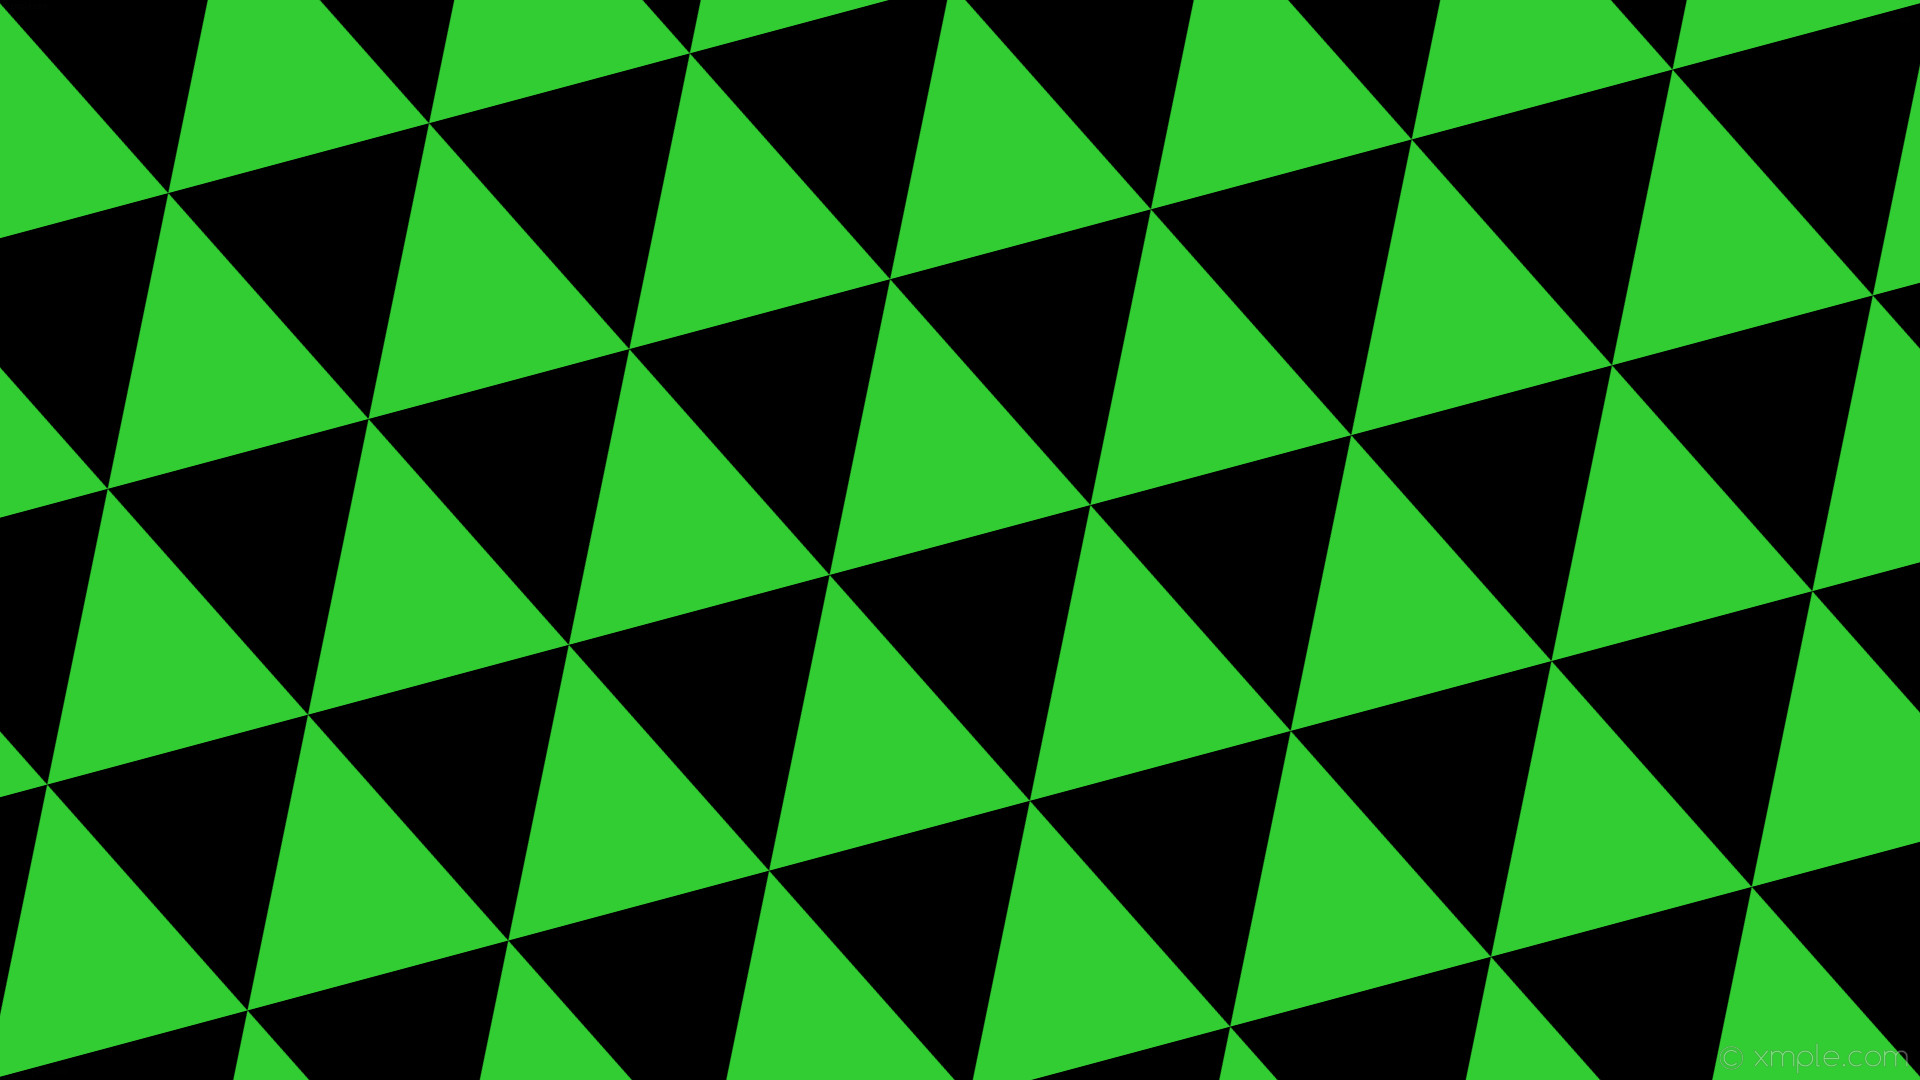 wallpaper black green triangle lime green #32cd32 #000000 195° 270px 540px